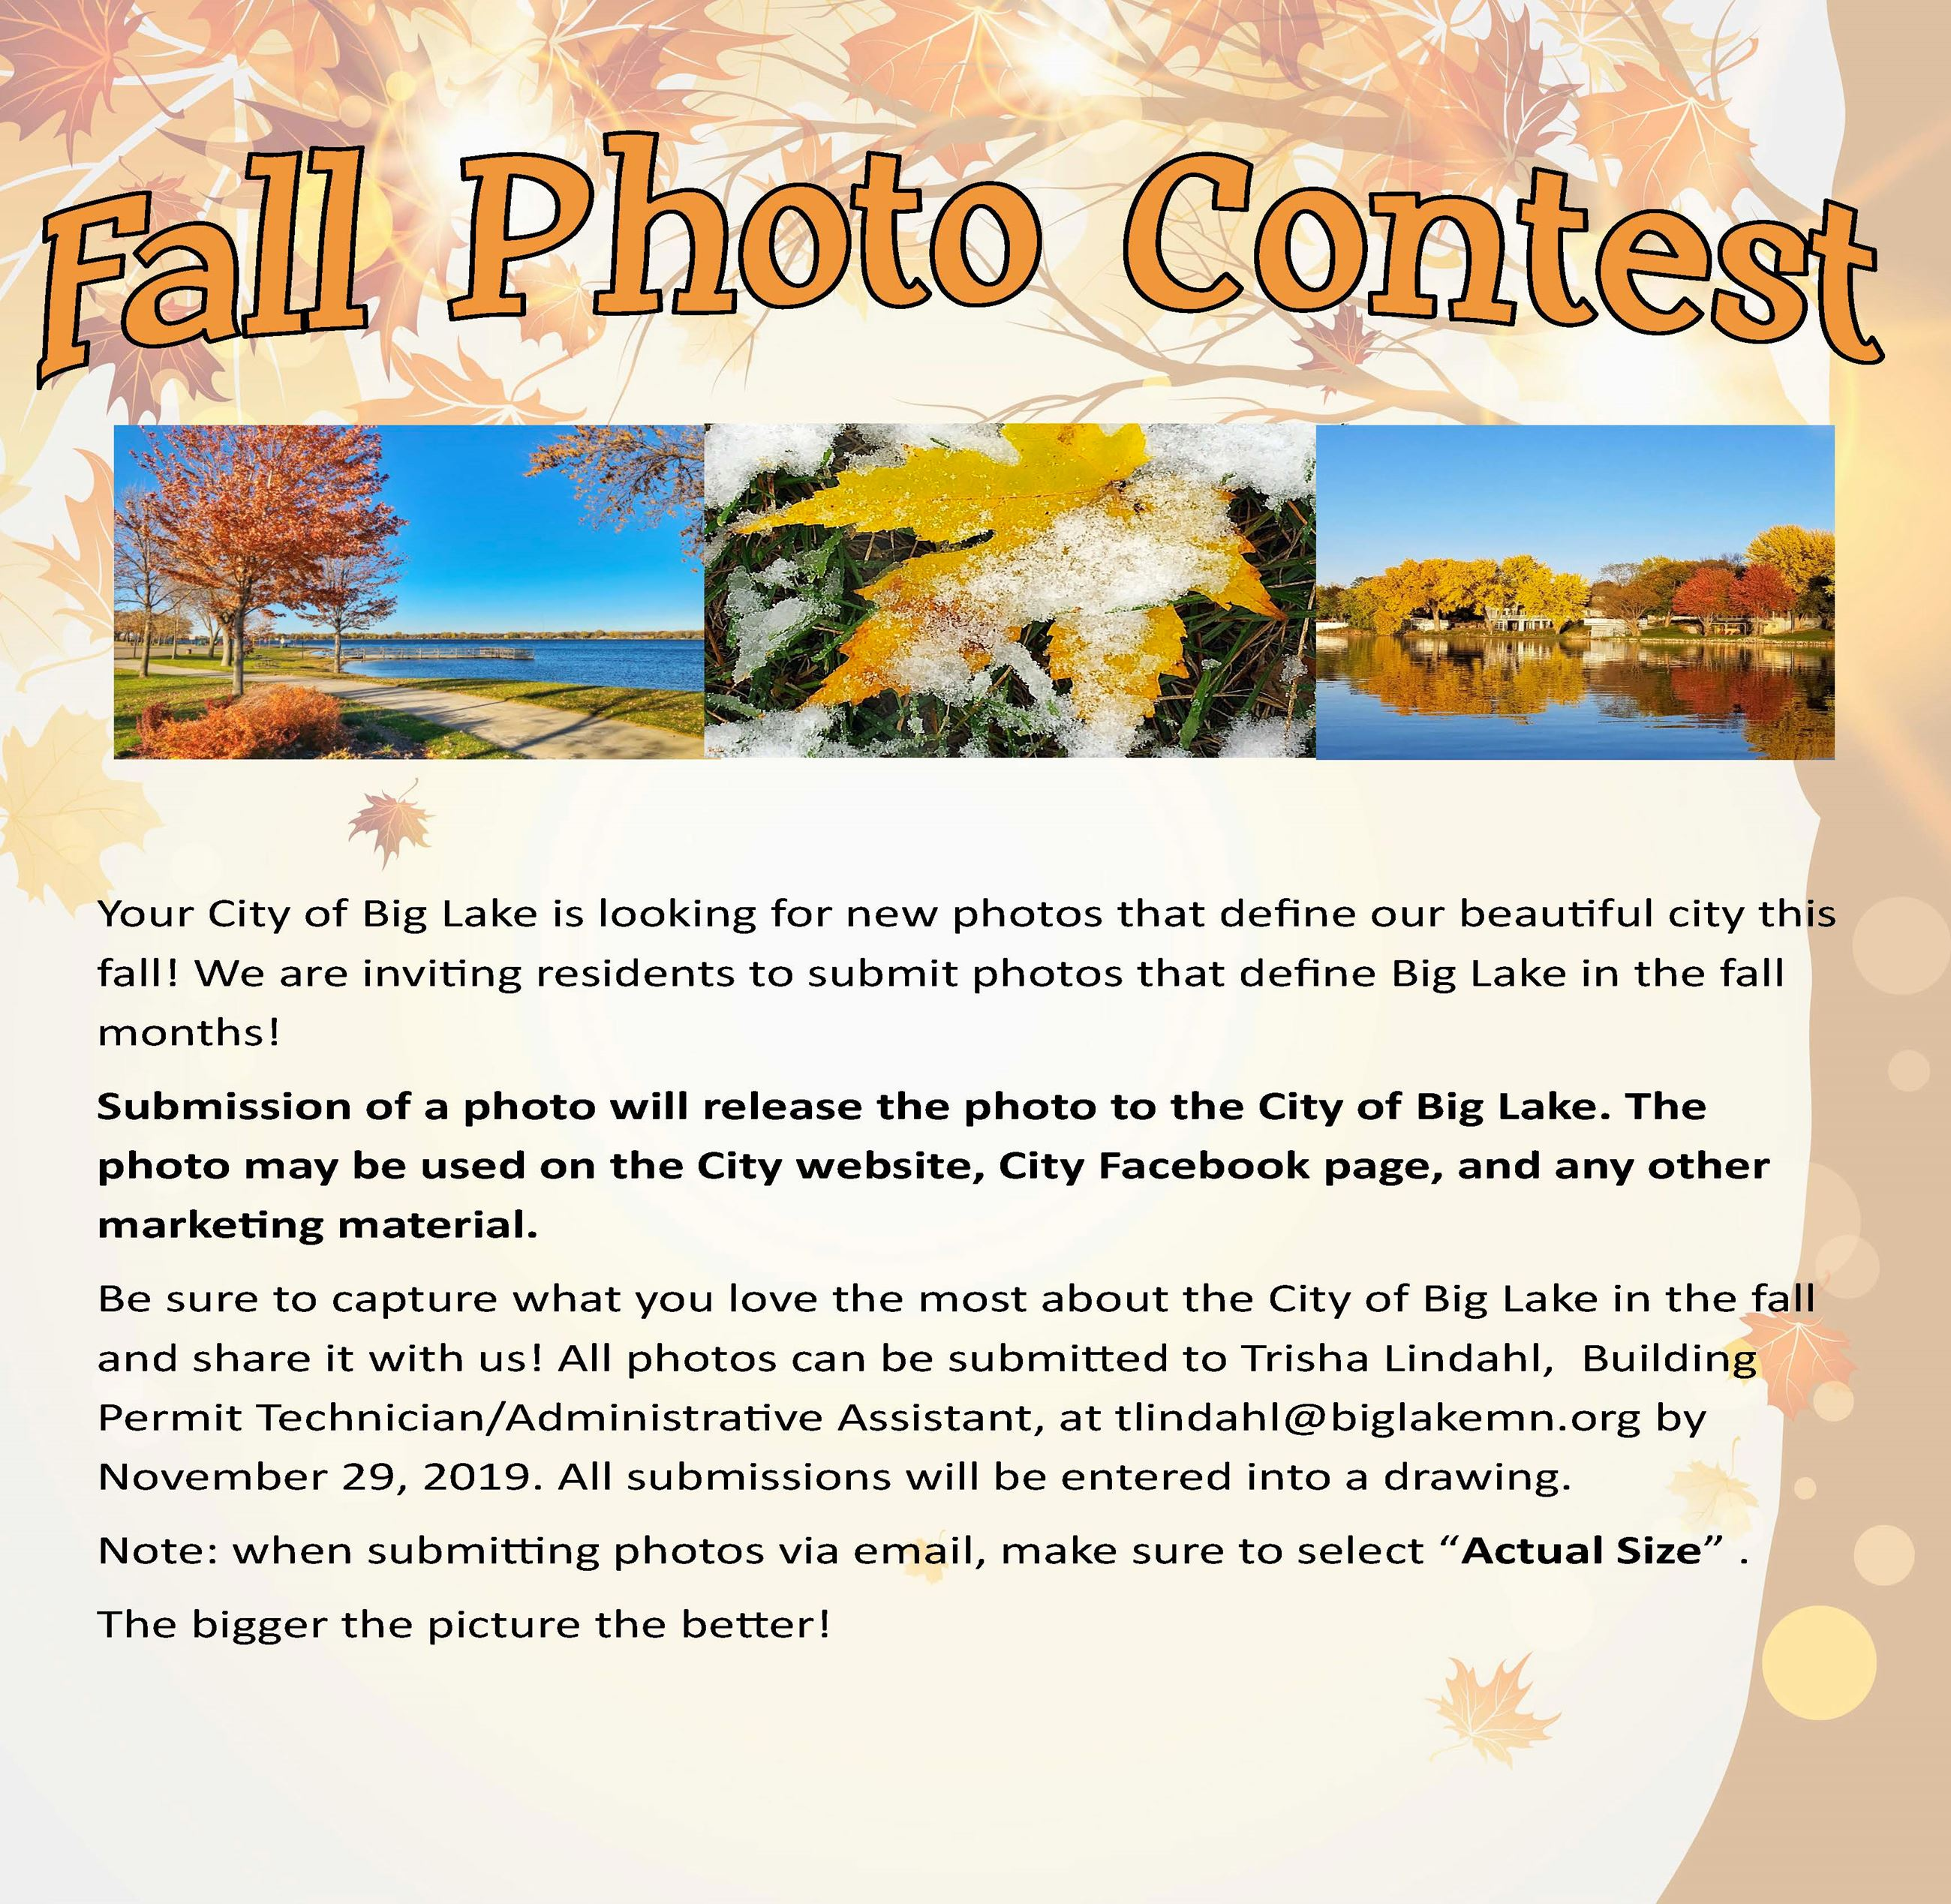 Fall Photo Contest Flyer